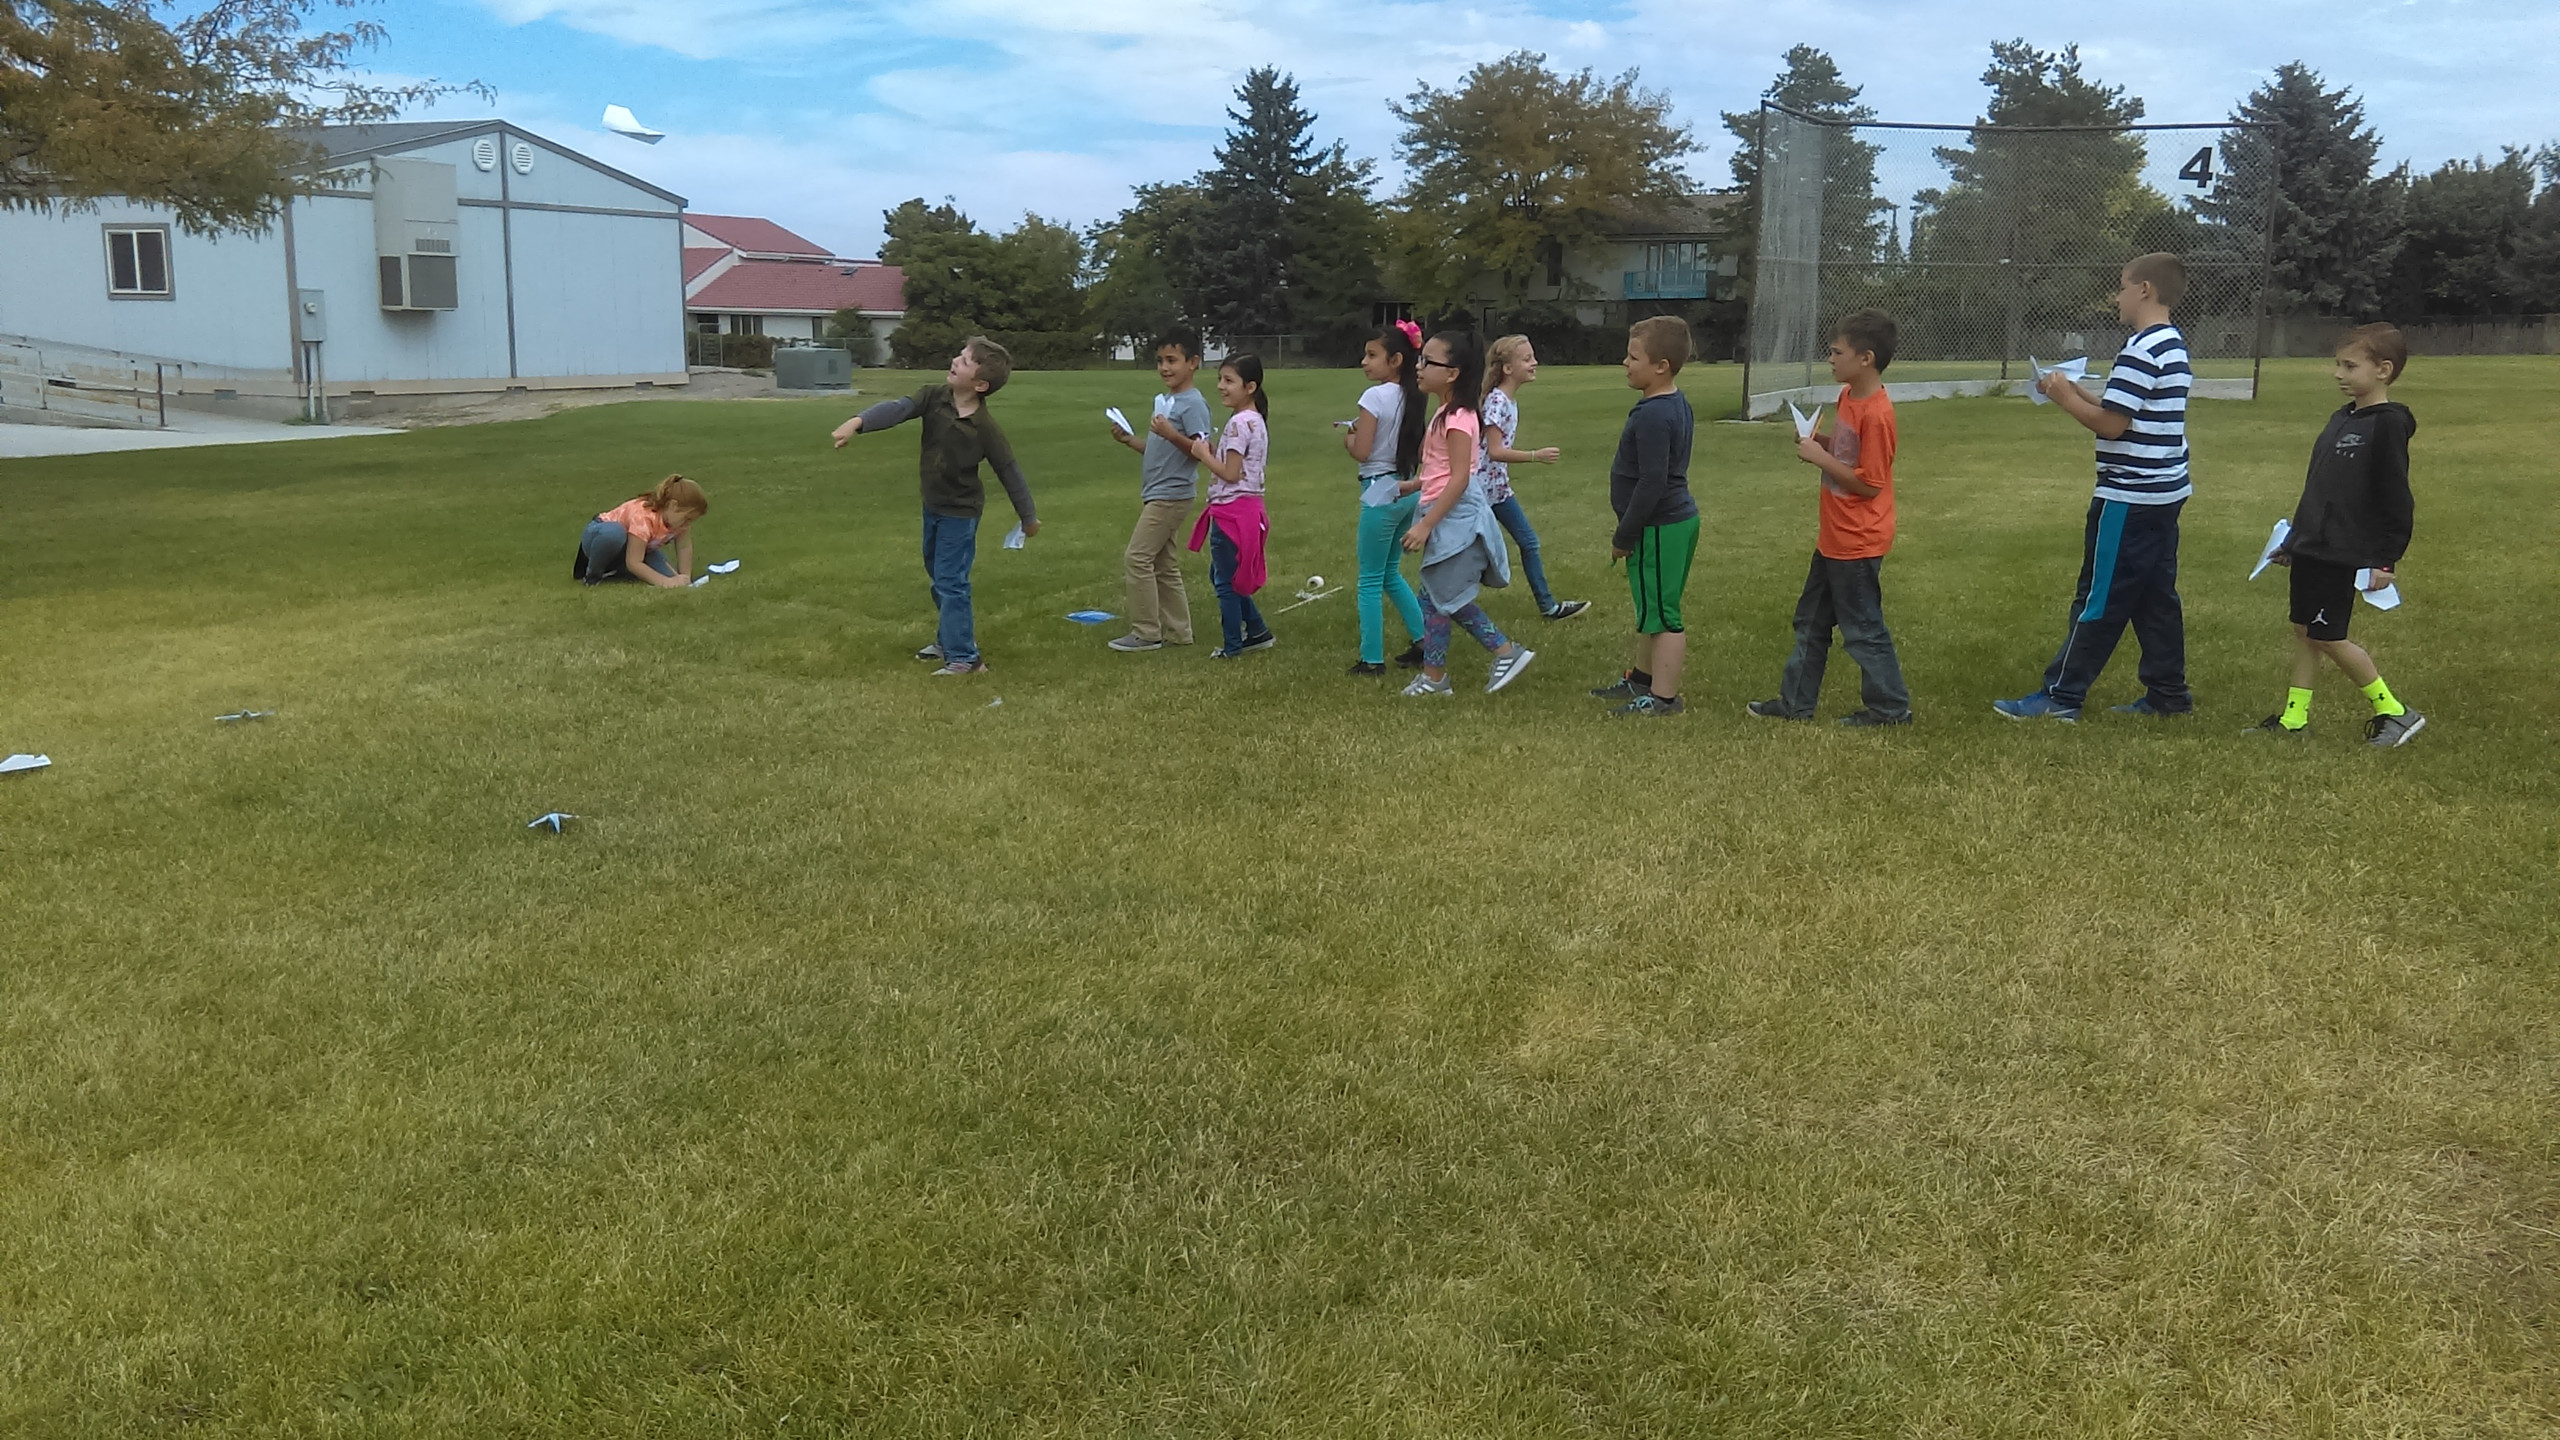 PES Students throw their paper airplanes to see who's goes farther.